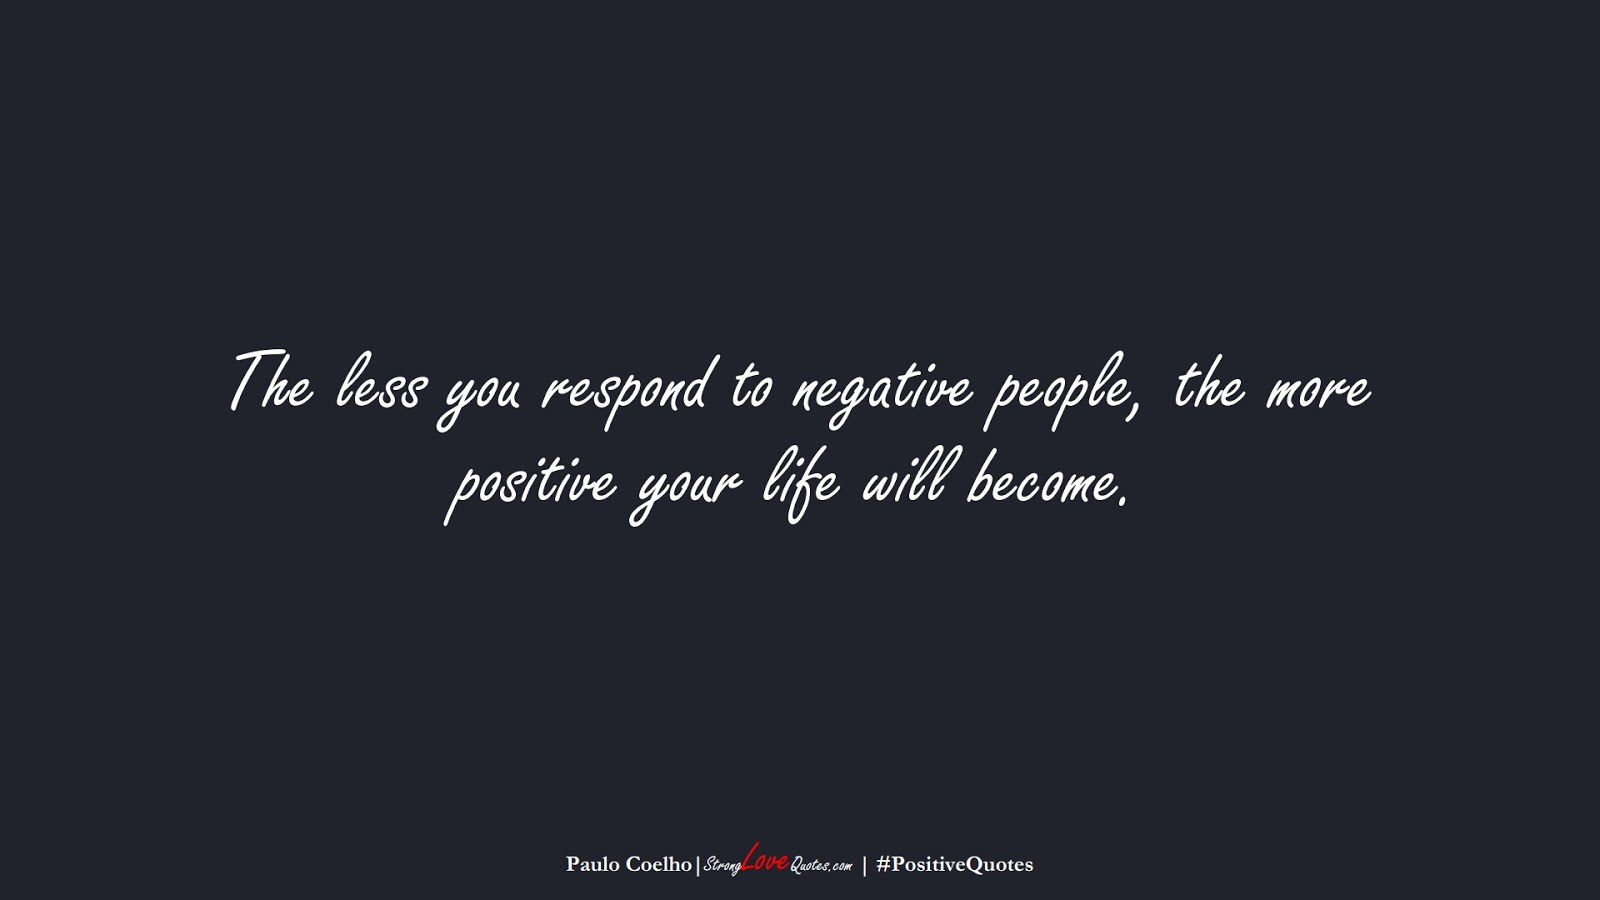 The less you respond to negative people, the more positive your life will become. (Paulo Coelho);  #PositiveQuotes